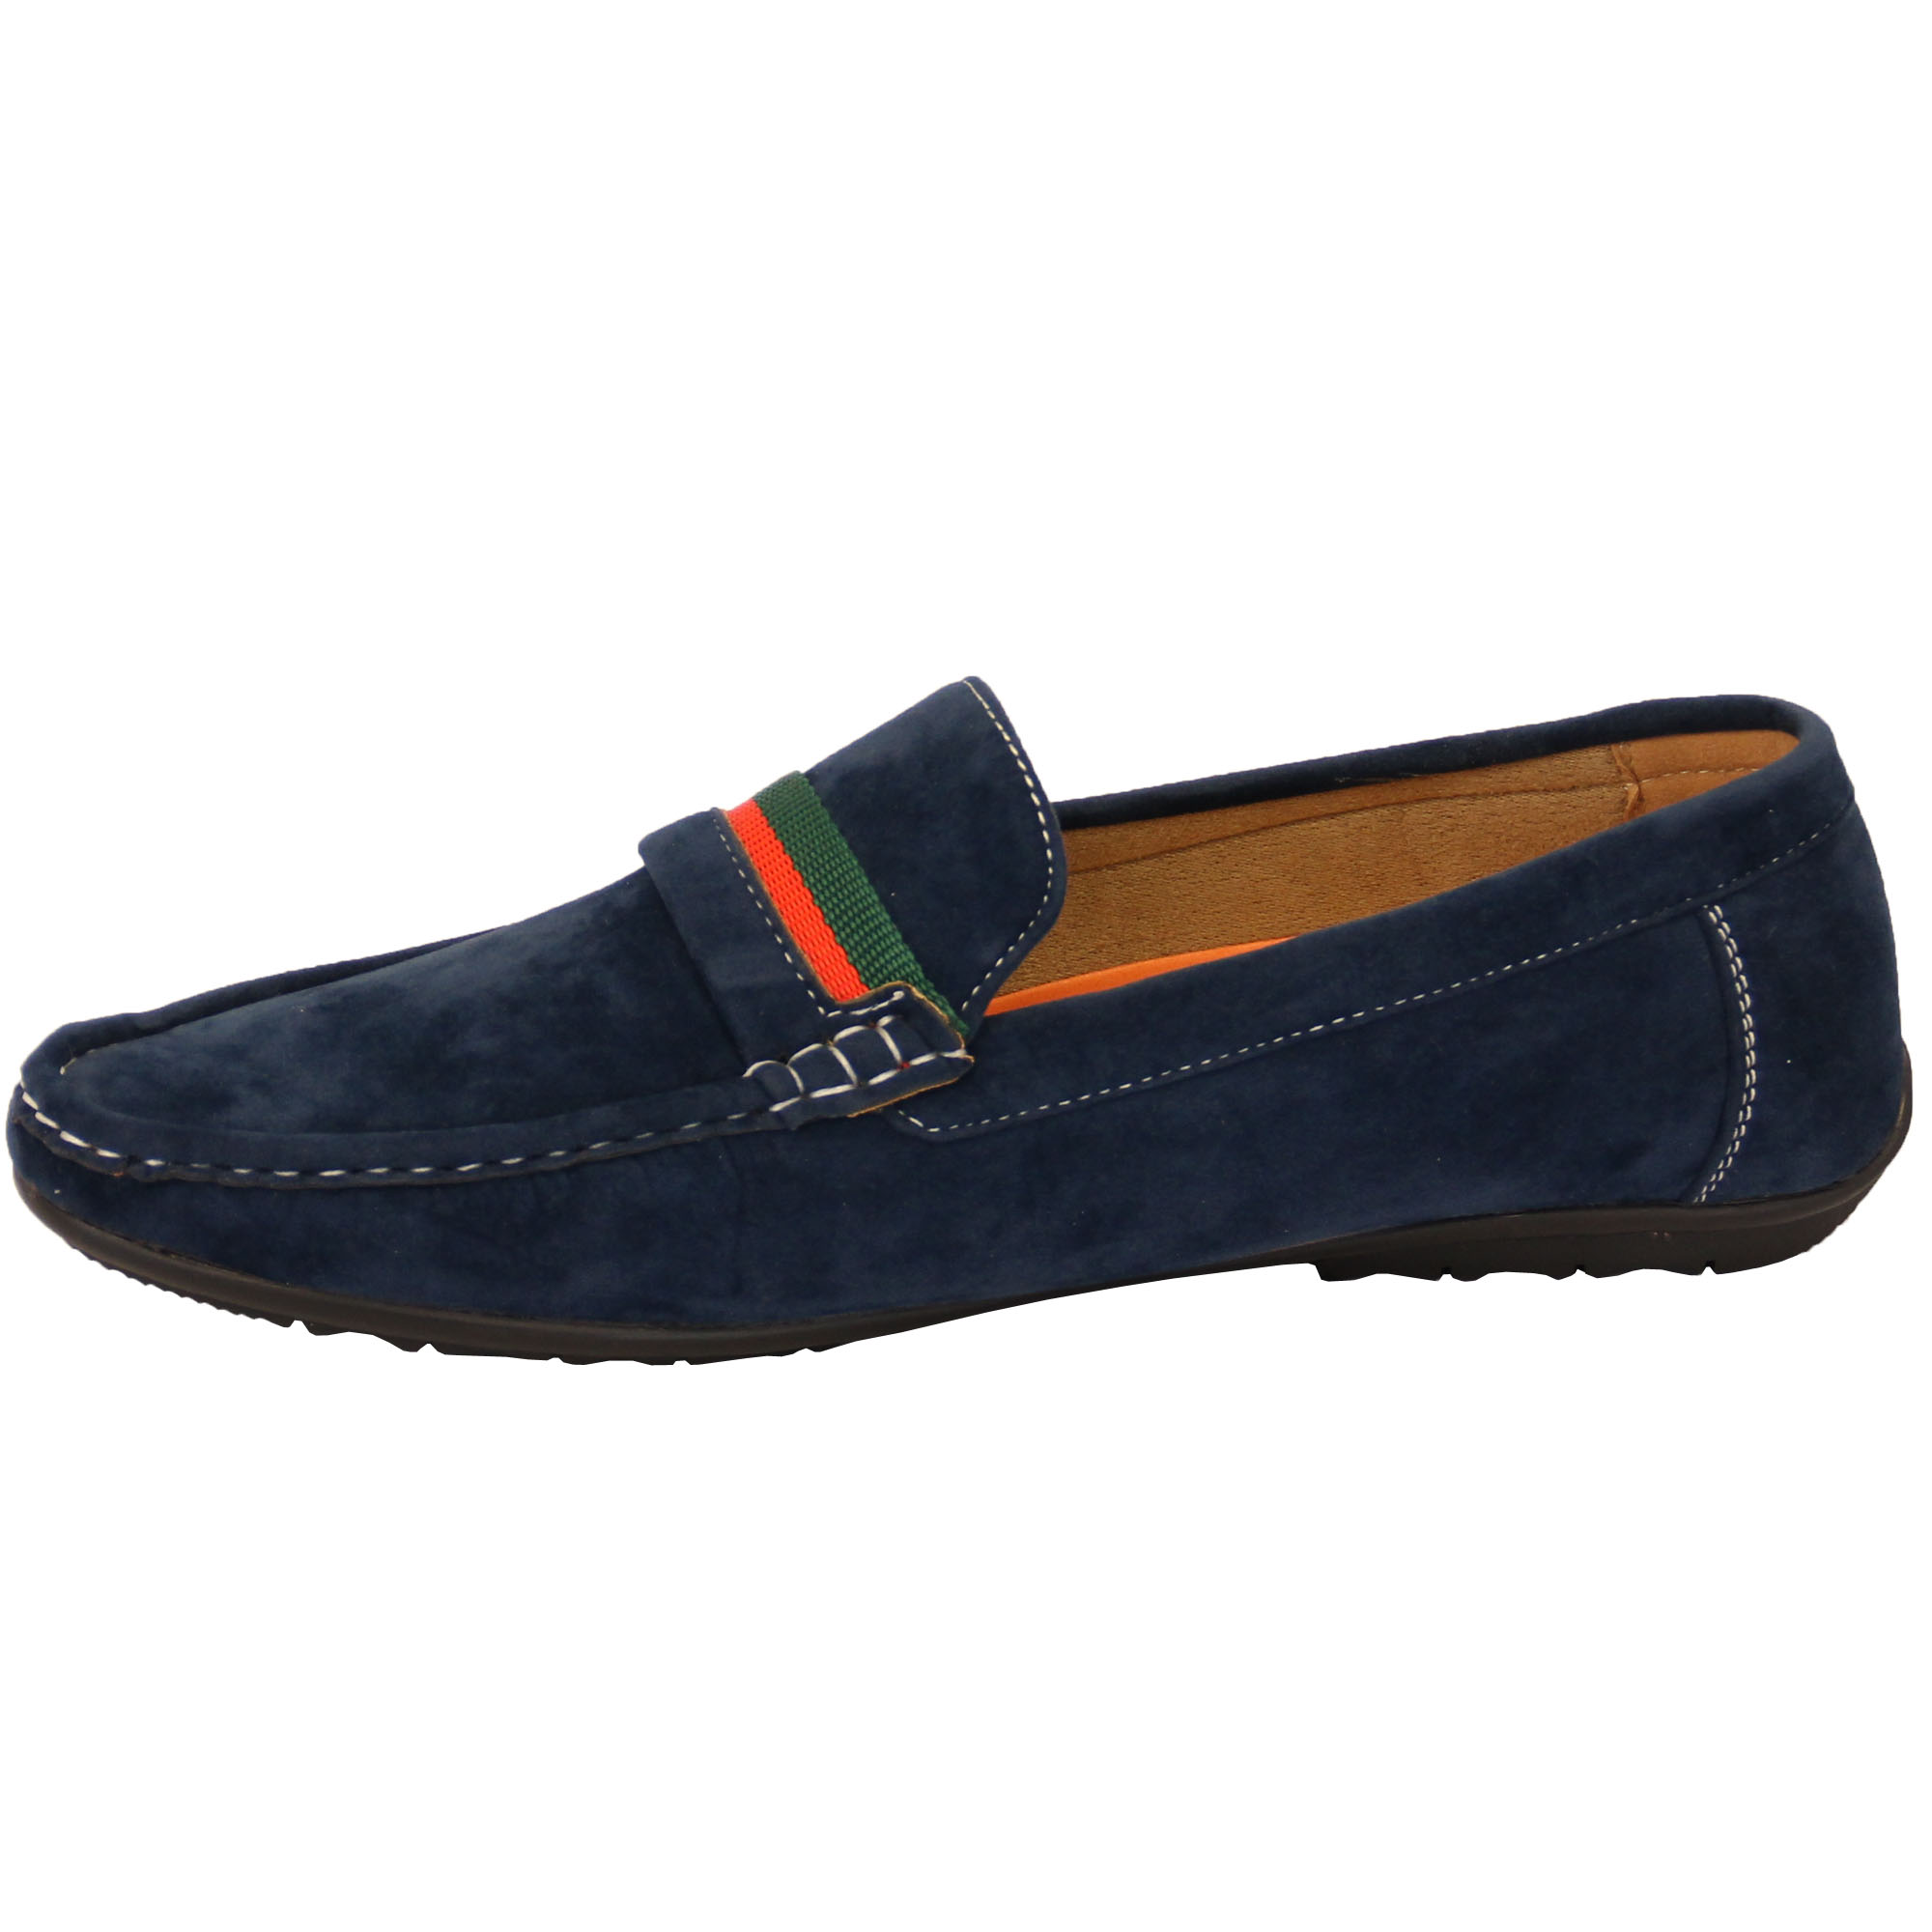 mens moccasins suede look driving loafers slip on boat